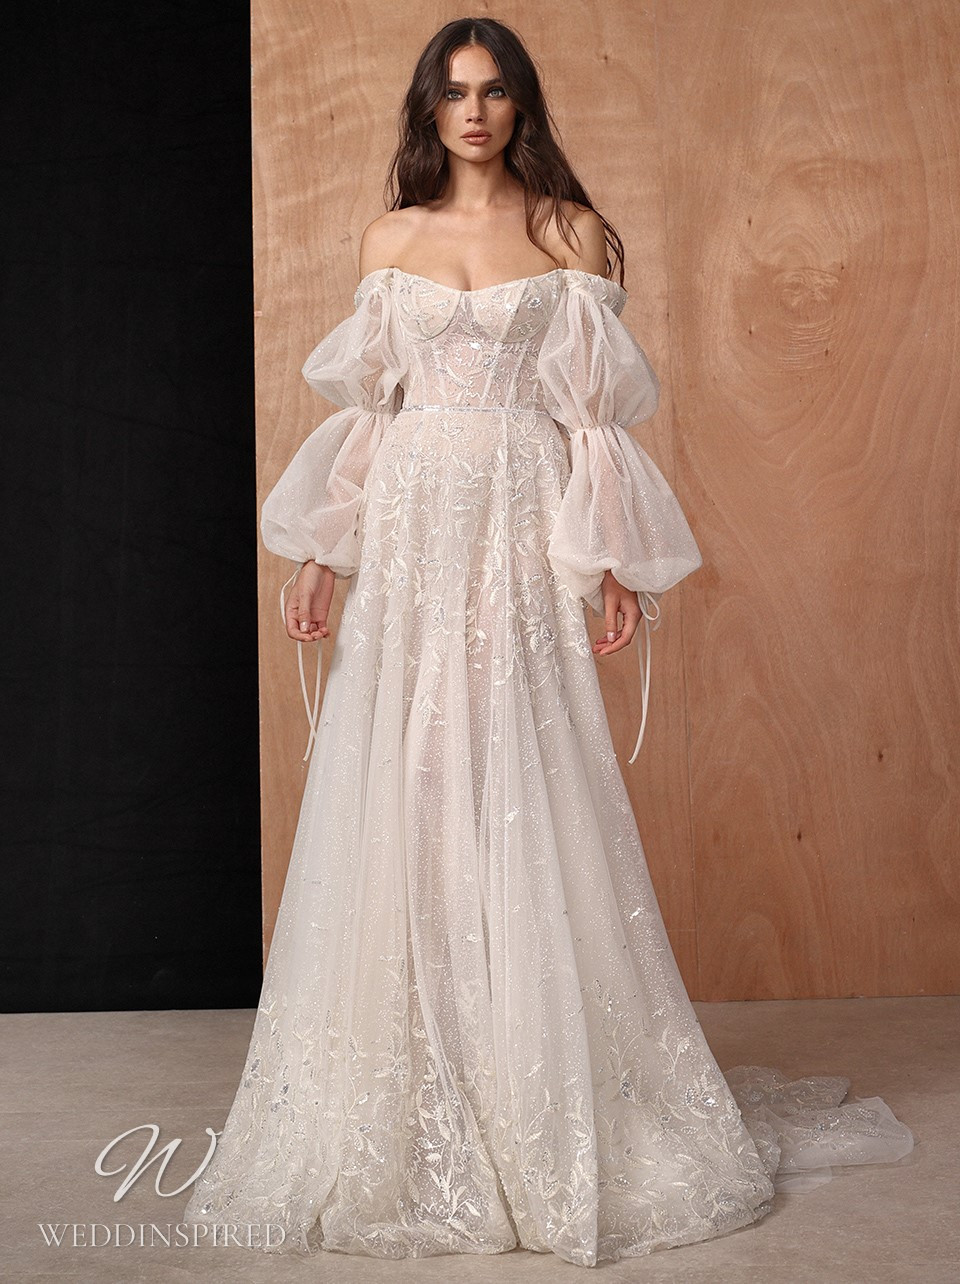 A Galia Lahav 2022 off the shoulder bohemian lace and tulle A-line wedding dress